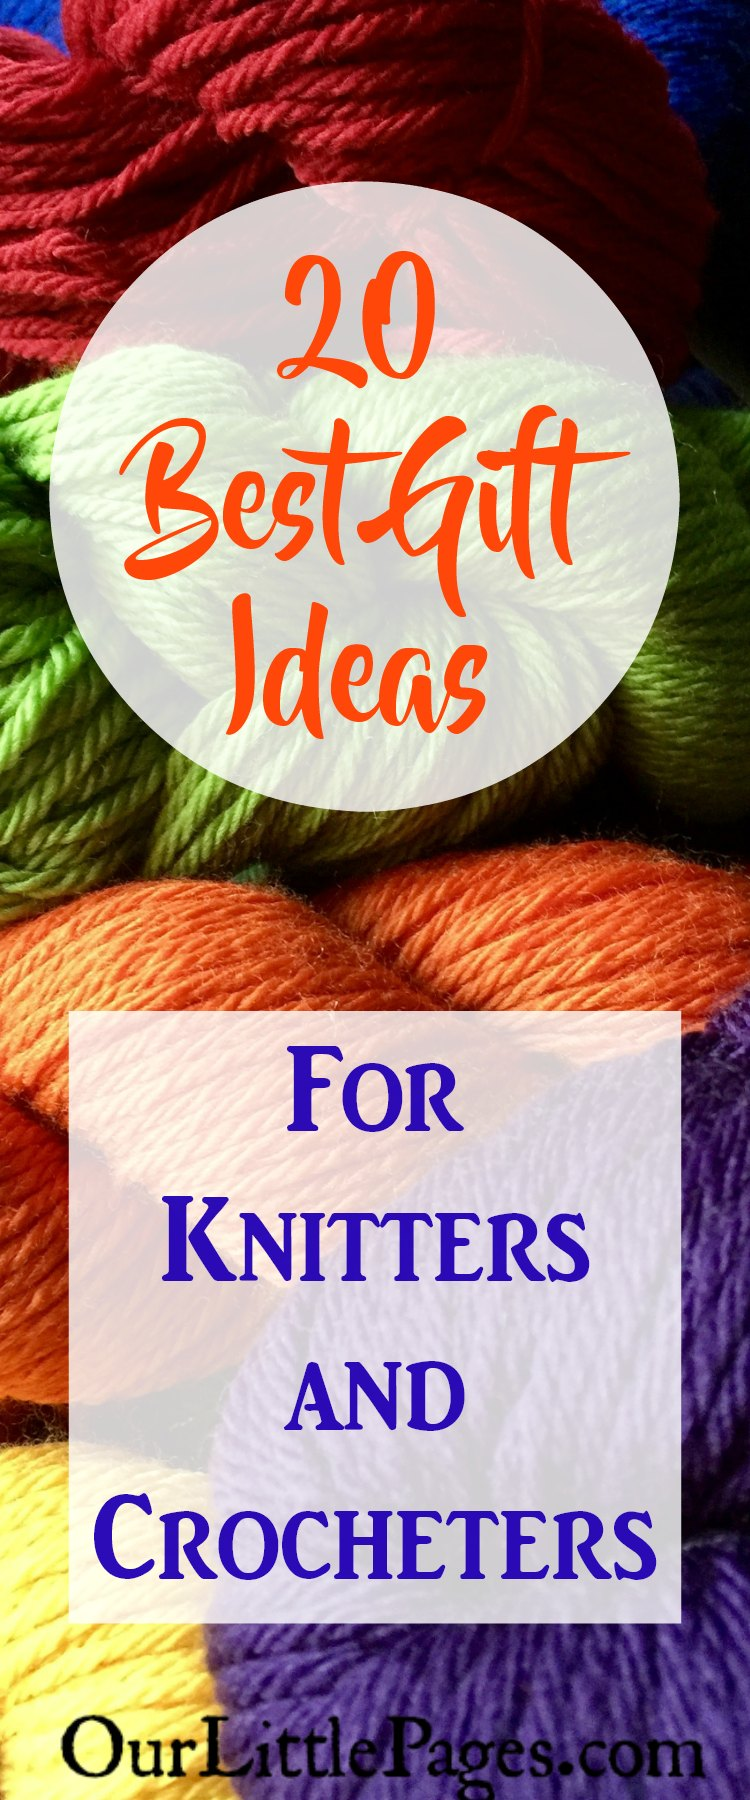 20 Best Gift Ideas for Knitters and Crocheters